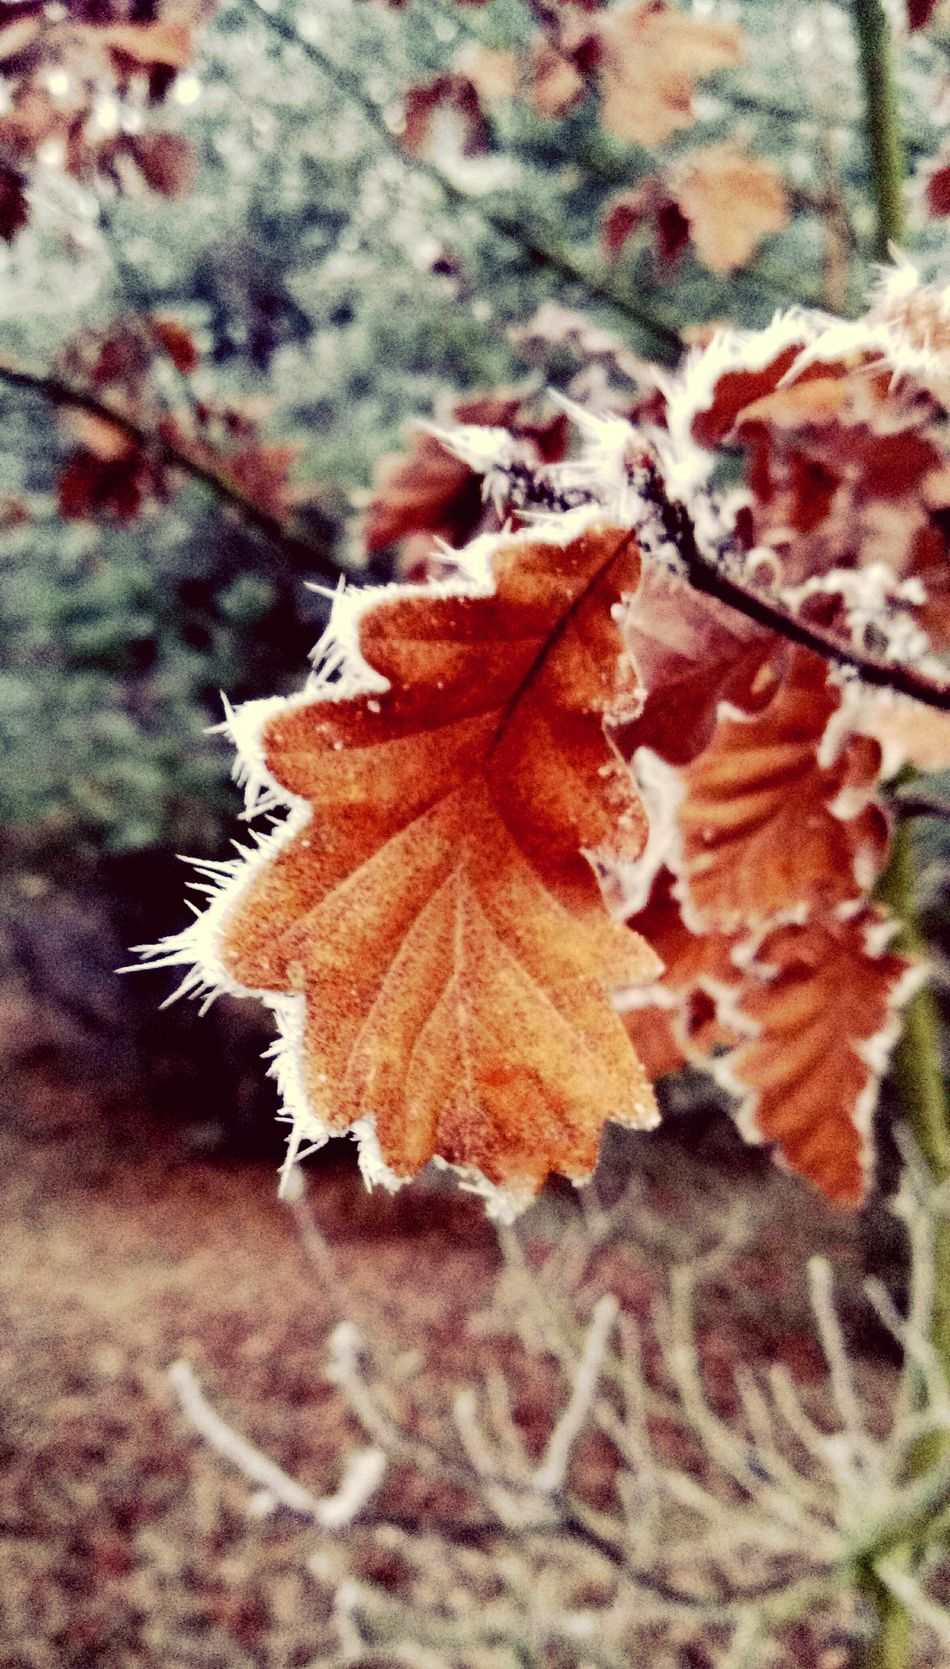 Close-up Nature Autumn Outdoors No People Focus On Foreground Leaf Change Beauty In Nature Fragility Tree Branch Maple LeaffRozen Fog Wintertime Winter_collection Taking Photos Tranquil Scene Woodland Walk Autumnbeauty Autumn Leaves Tranquility Raureif  Morning Light Rime Froast